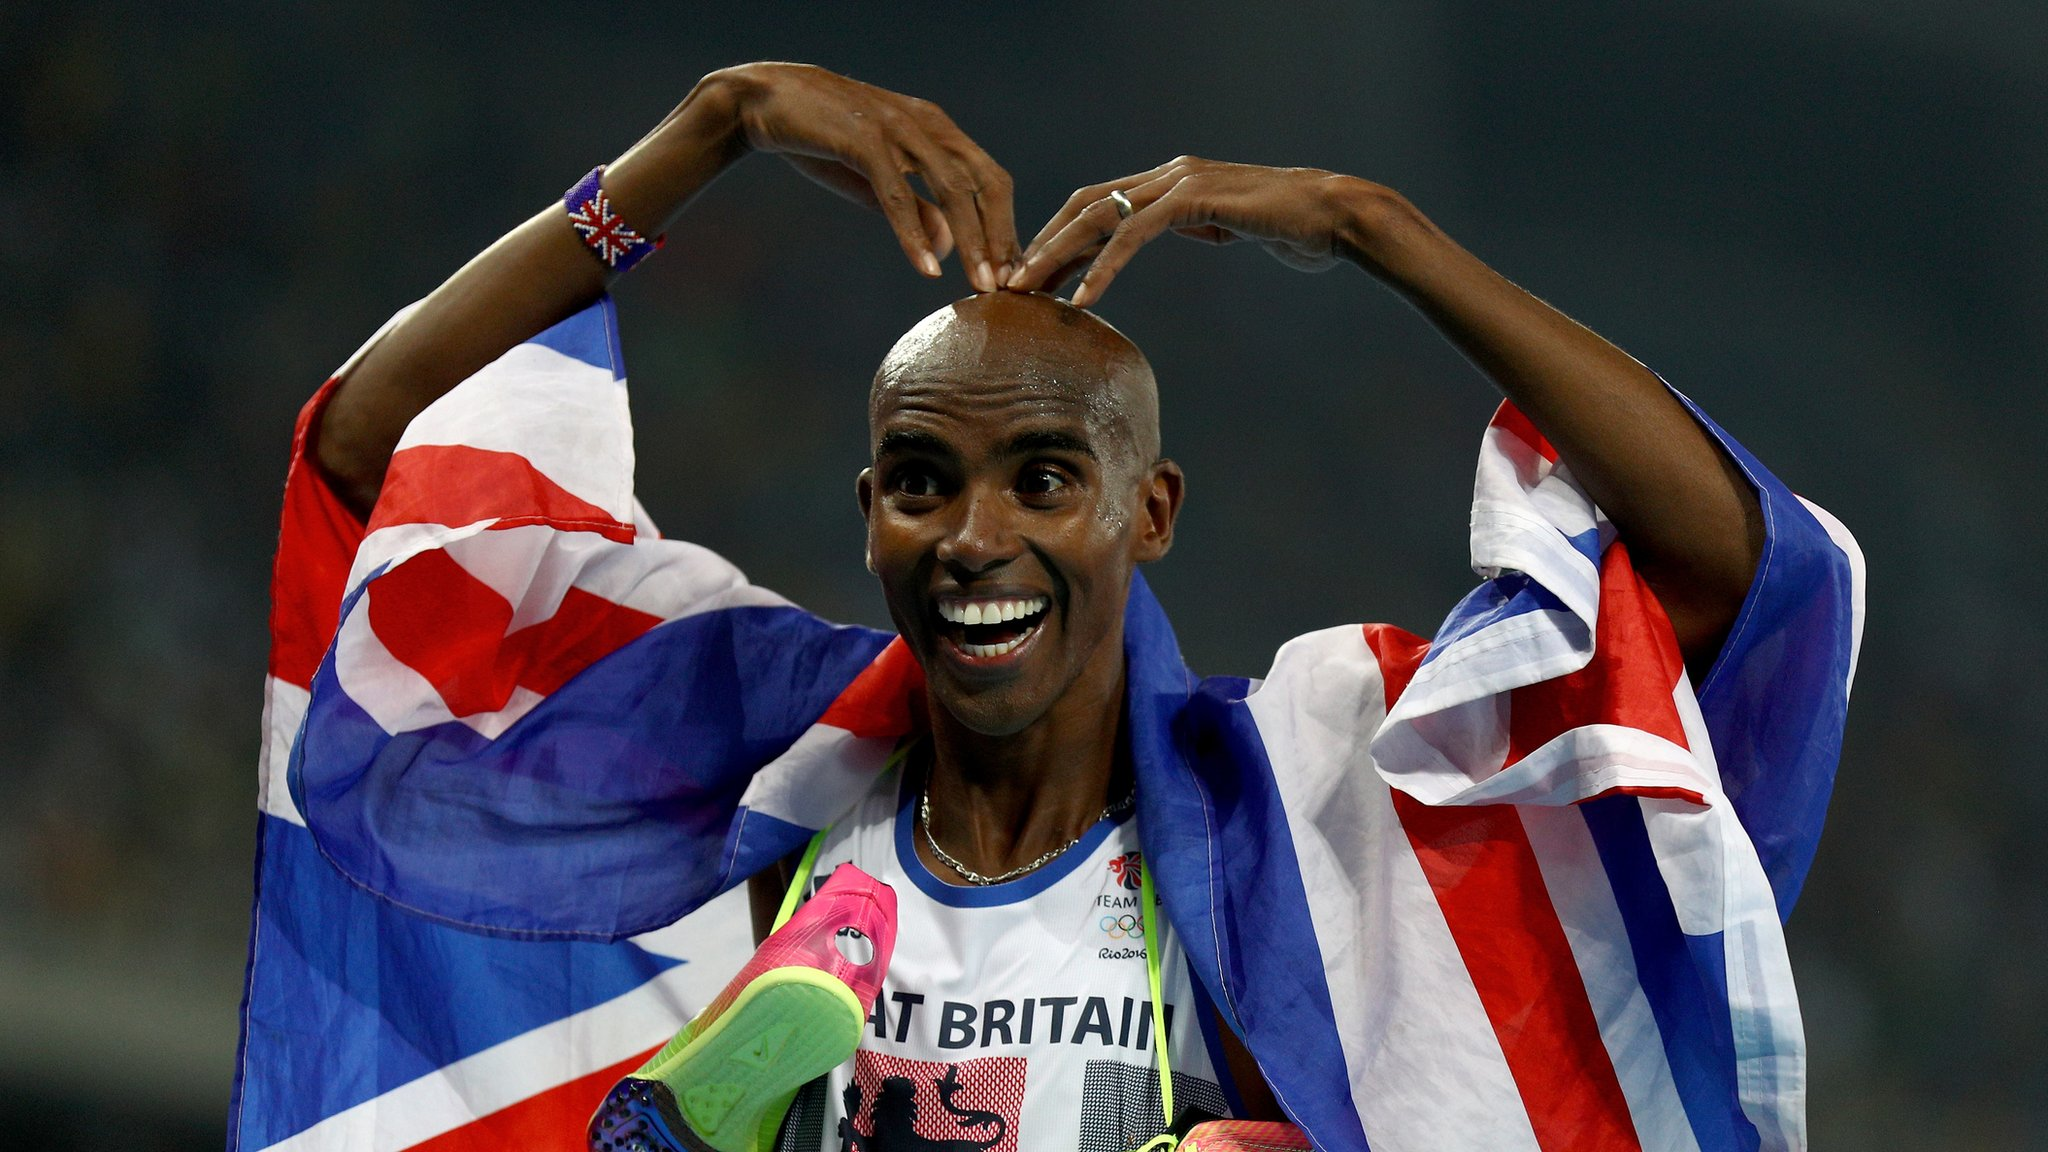 Mo Farah may come out of track retirement for Tokyo 2020